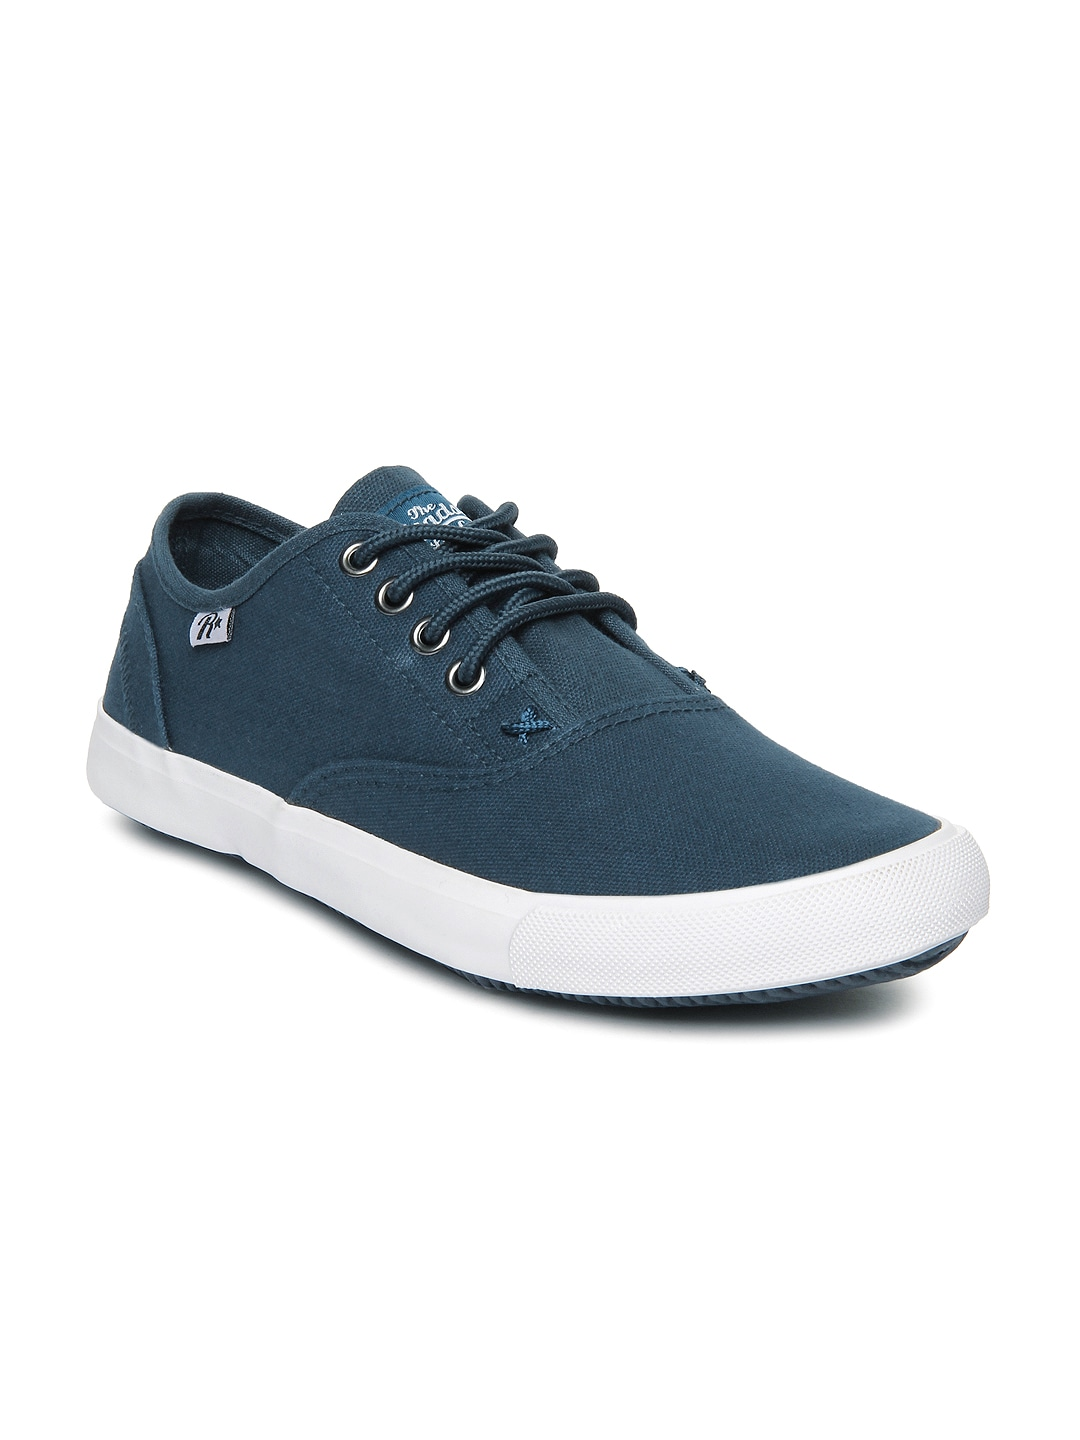 Cheapest name brand shoes online Shoes for men online